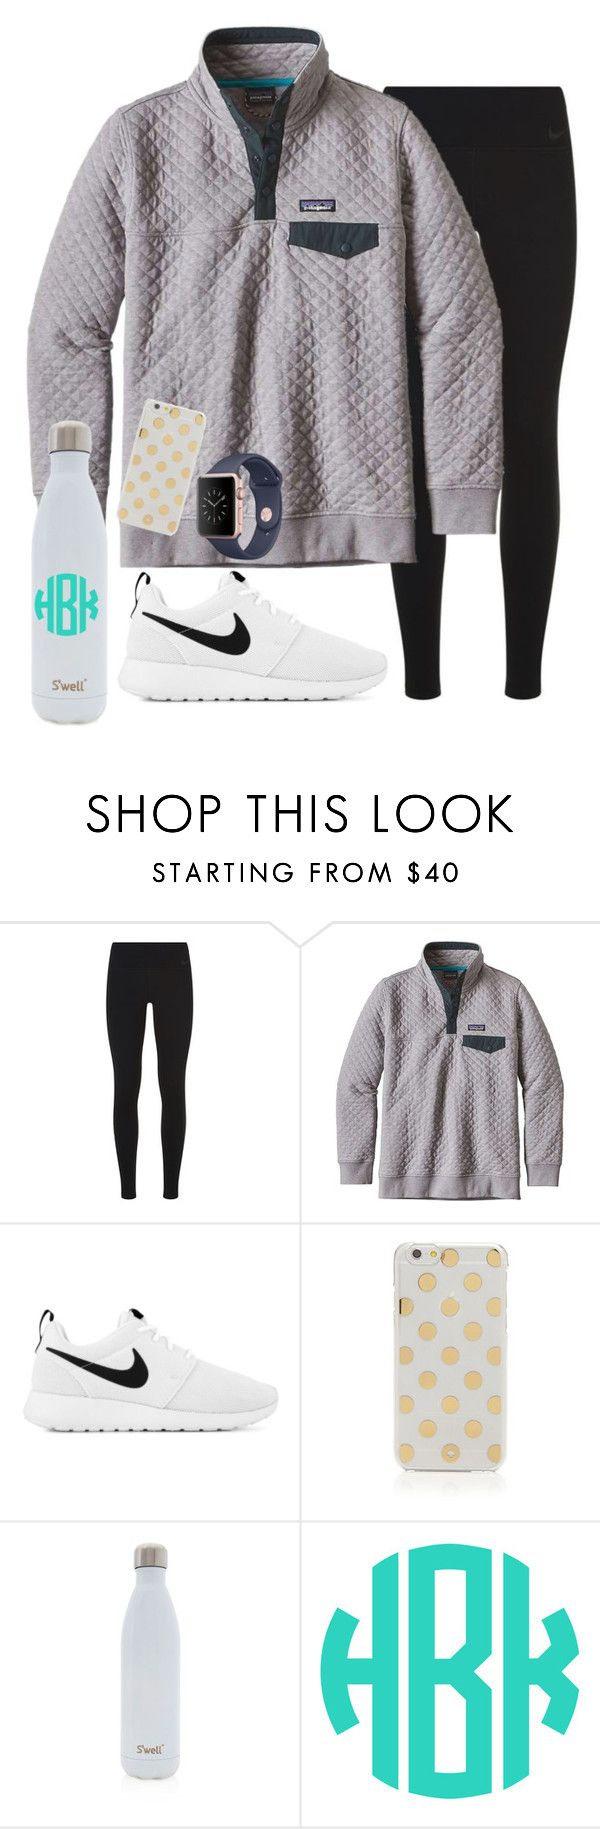 """obsessed with my new Patagonia  outfit for practice tonight!"" by sydneygrignon ❤ liked on Polyvore featuring NIKE, Patagonia, Kate Spade and S'well"